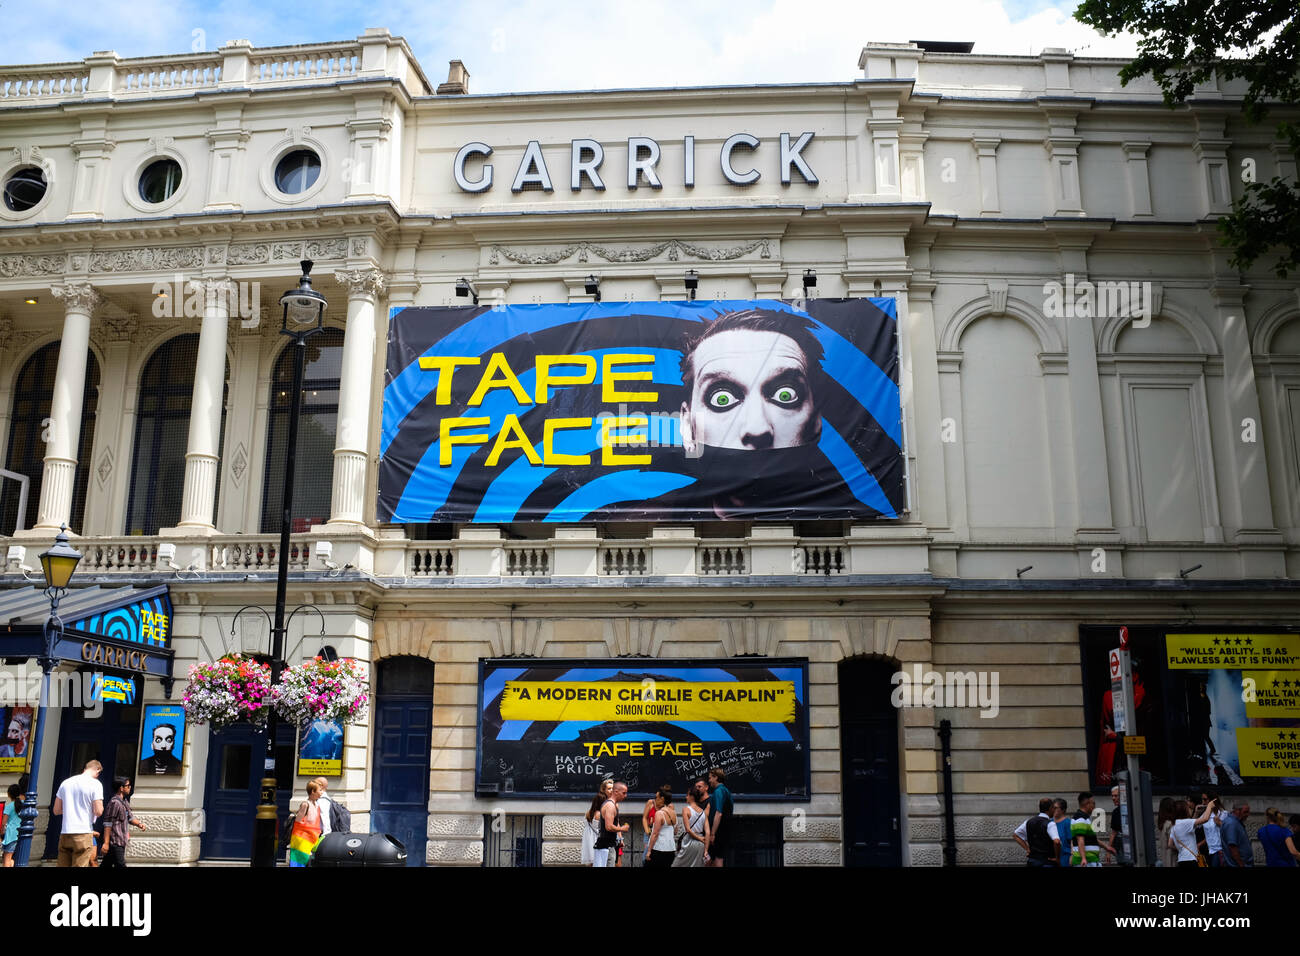 Tape Face showing at London's Garrick Theatre during the summer of 2017. - Stock Image